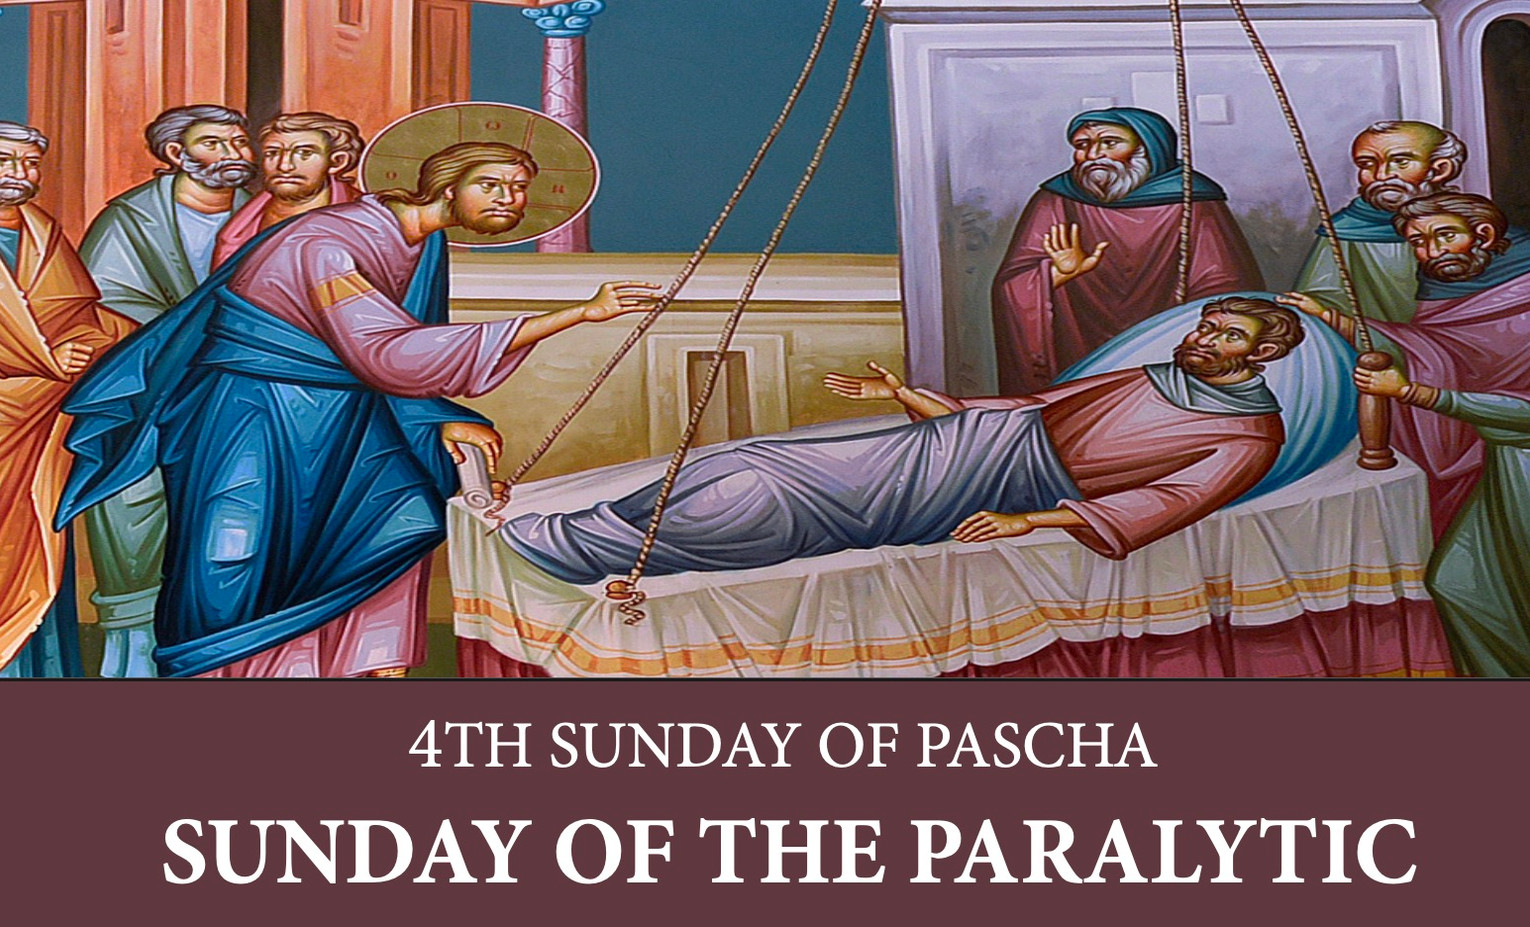 DCE Materials: The Fourth Sunday of Pascha - Sunday of the Paralytic